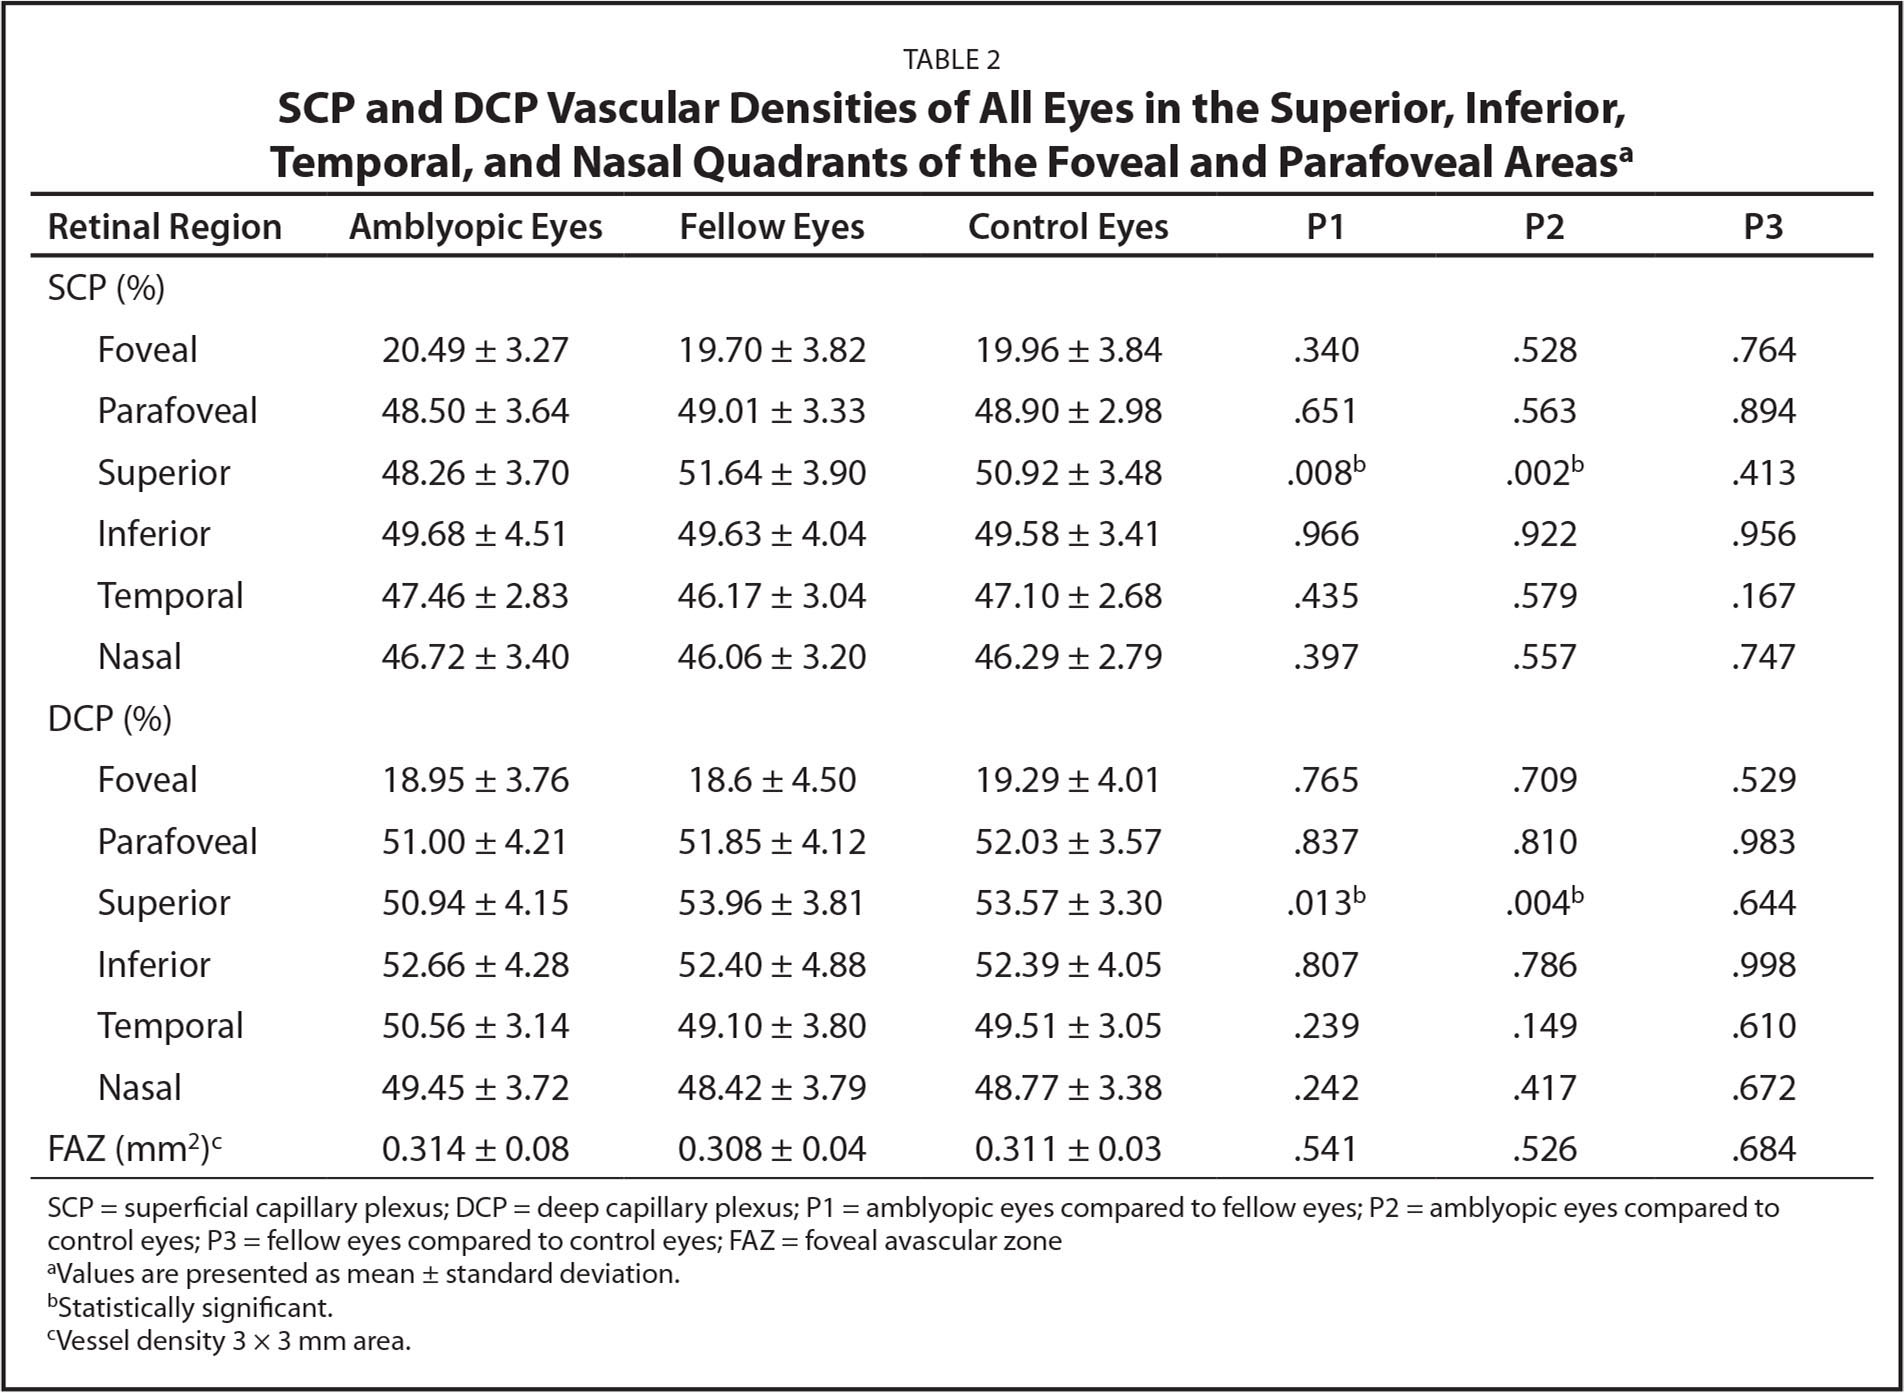 SCP and DCP Vascular Densities of All Eyes in the Superior, Inferior, Temporal, and Nasal Quadrants of the Foveal and Parafoveal Areasa